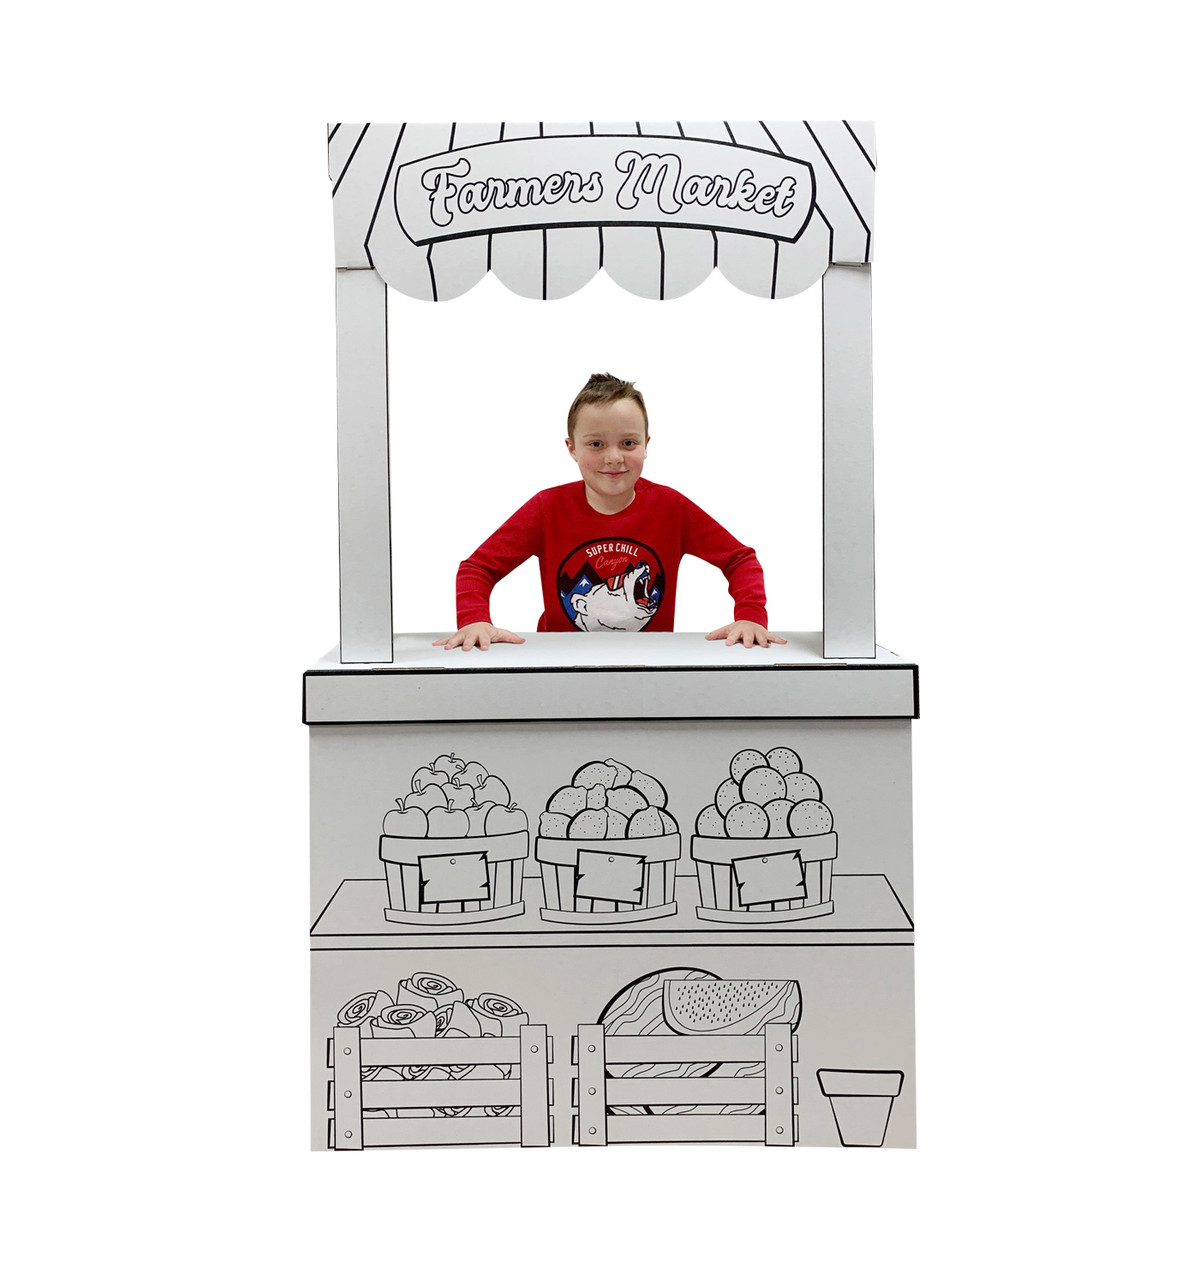 Life-size Color Me Farmers Market Stand with model.